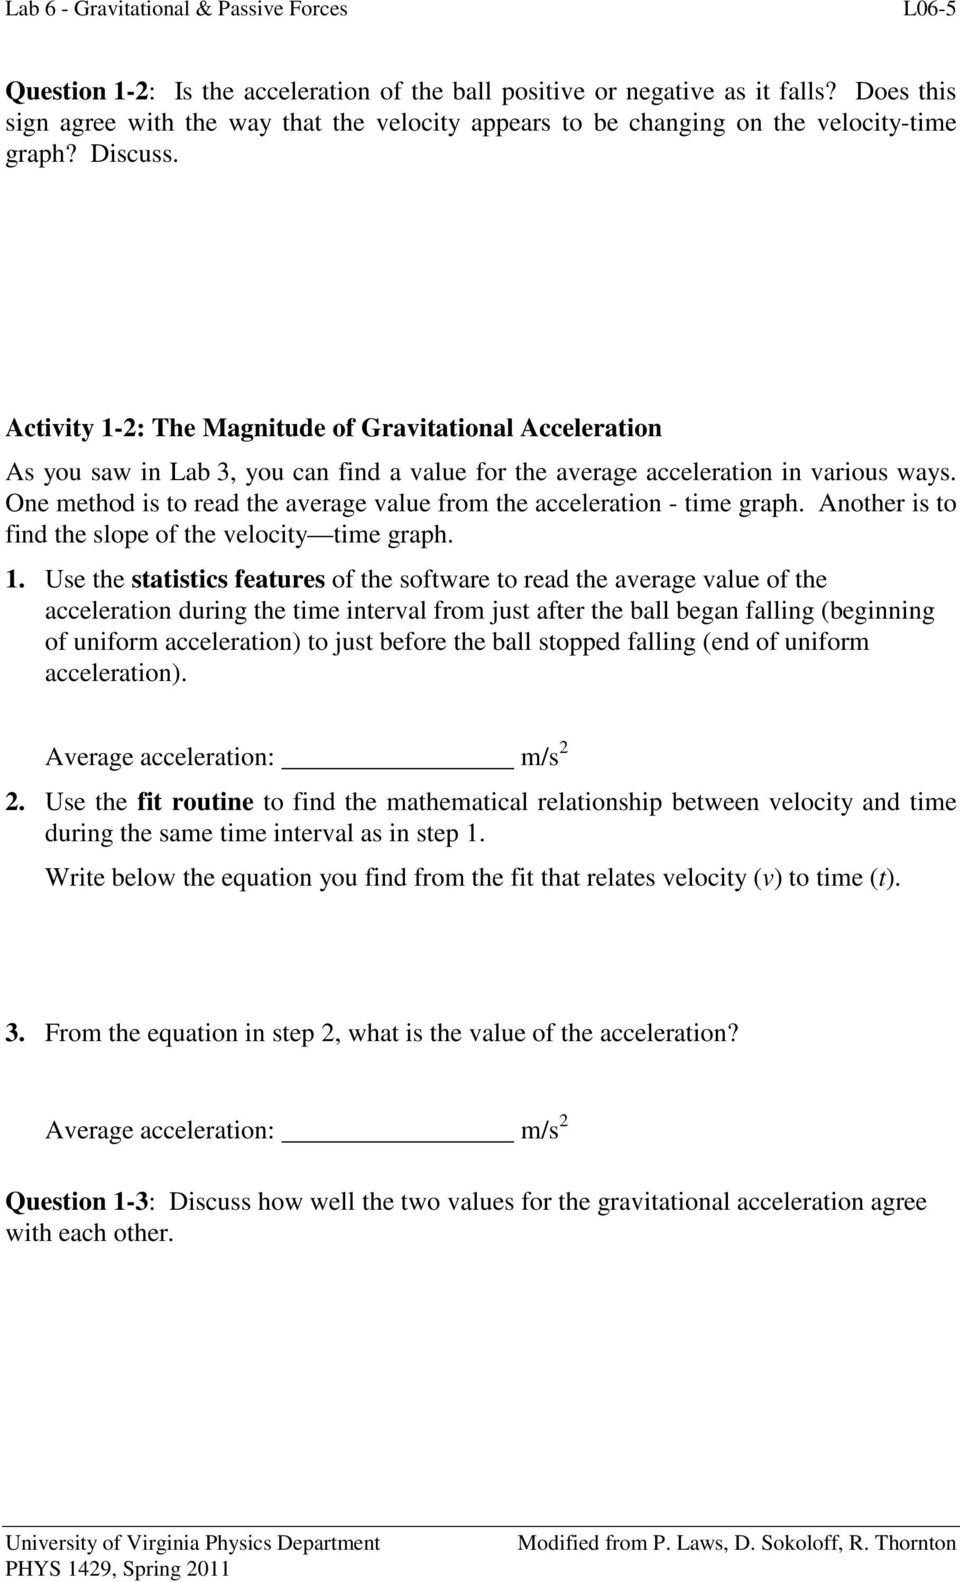 Activity 1-2: The Magnitude of Gravitational Acceleration As you saw in Lab 3, you can find a value for the average acceleration in various ways.